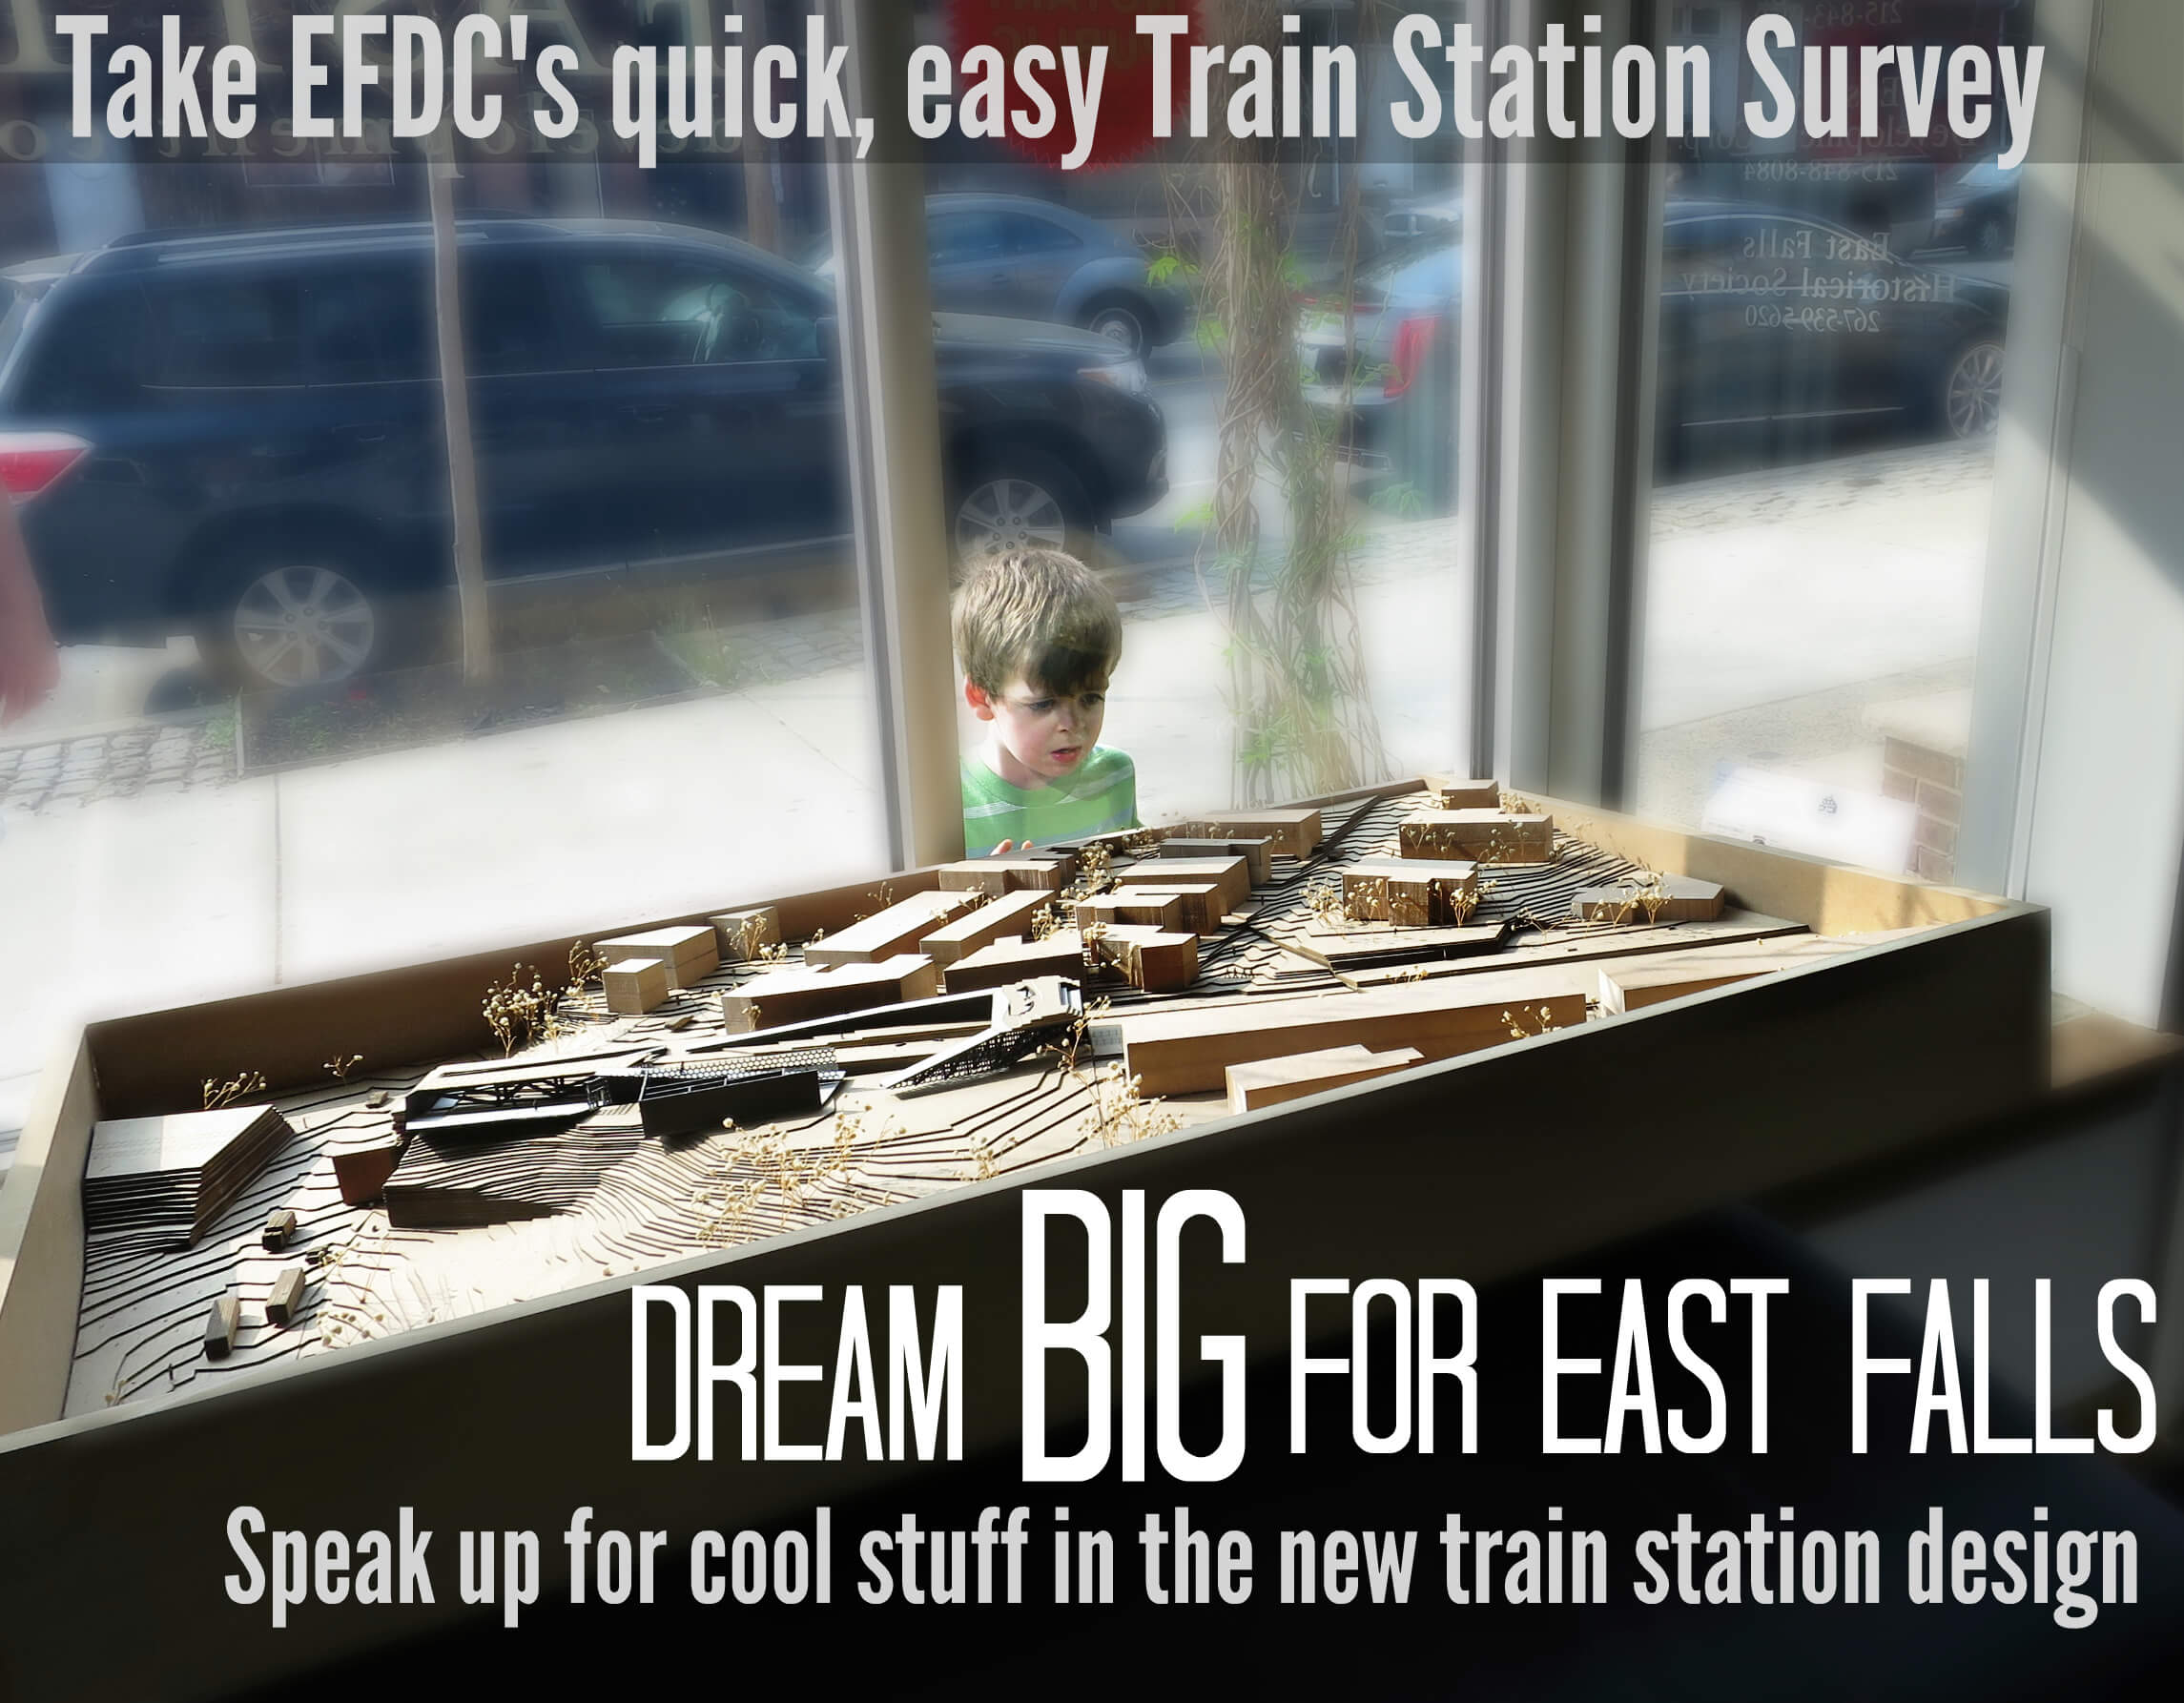 Eastfallslocal meme 2 5-7 Kid staring at models for train station